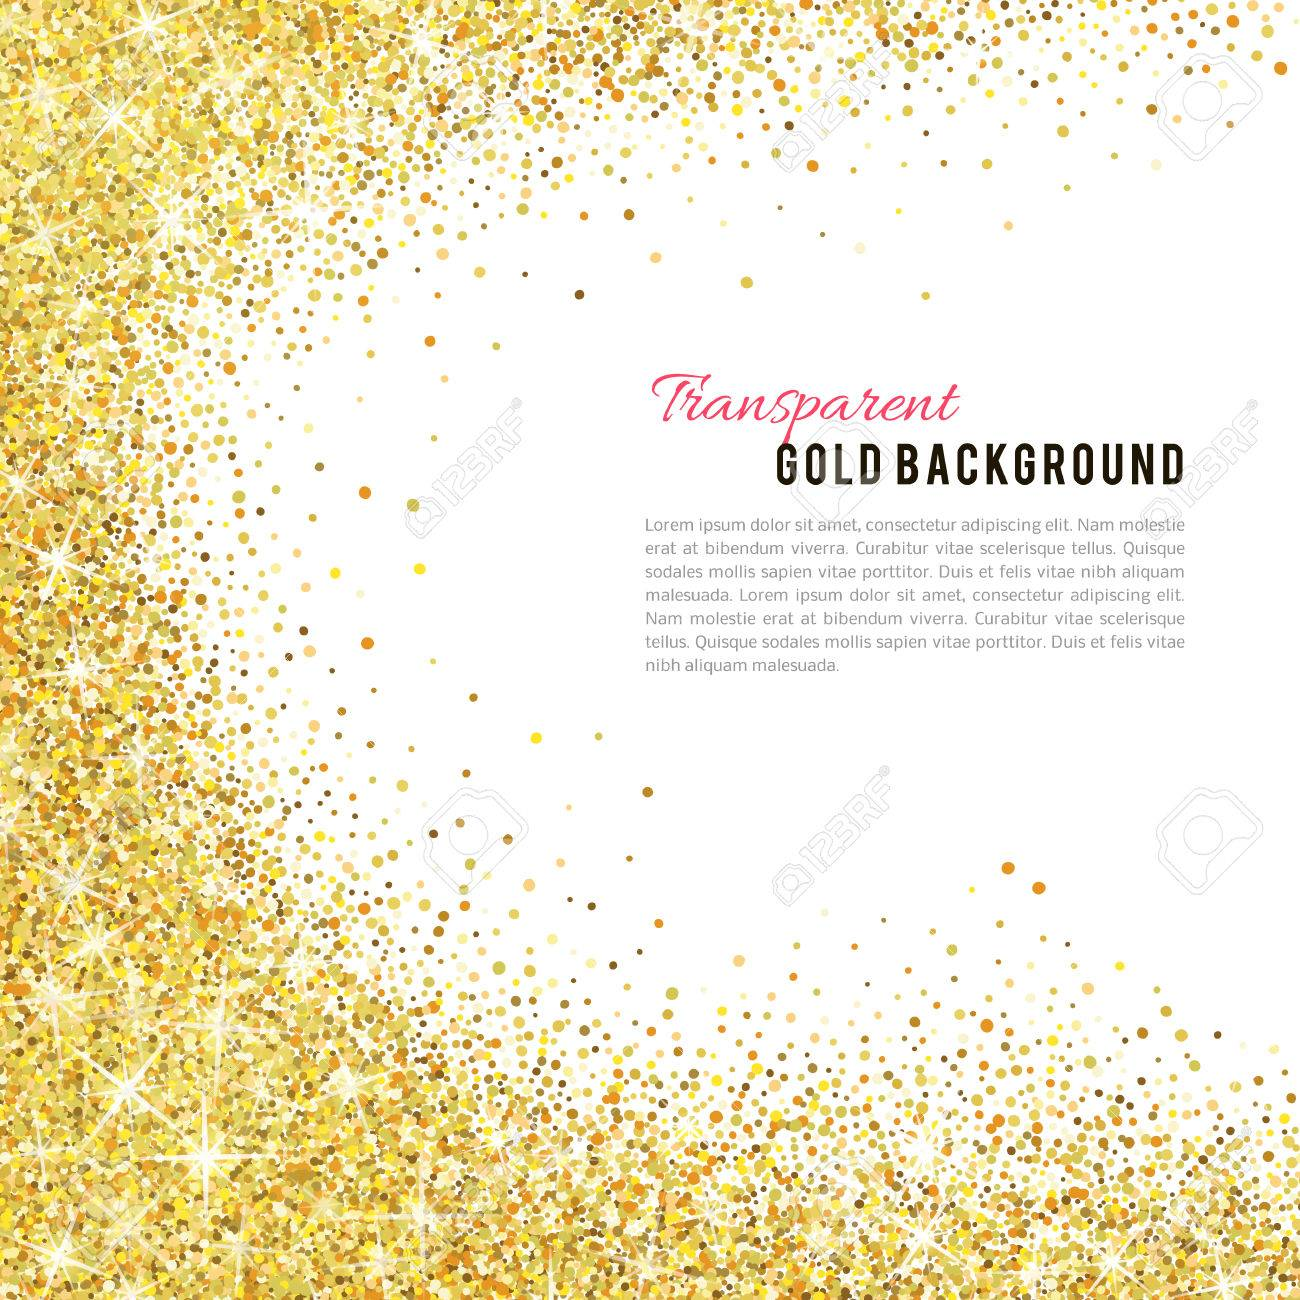 Gold glitter texture isolated on white background. - 53983297